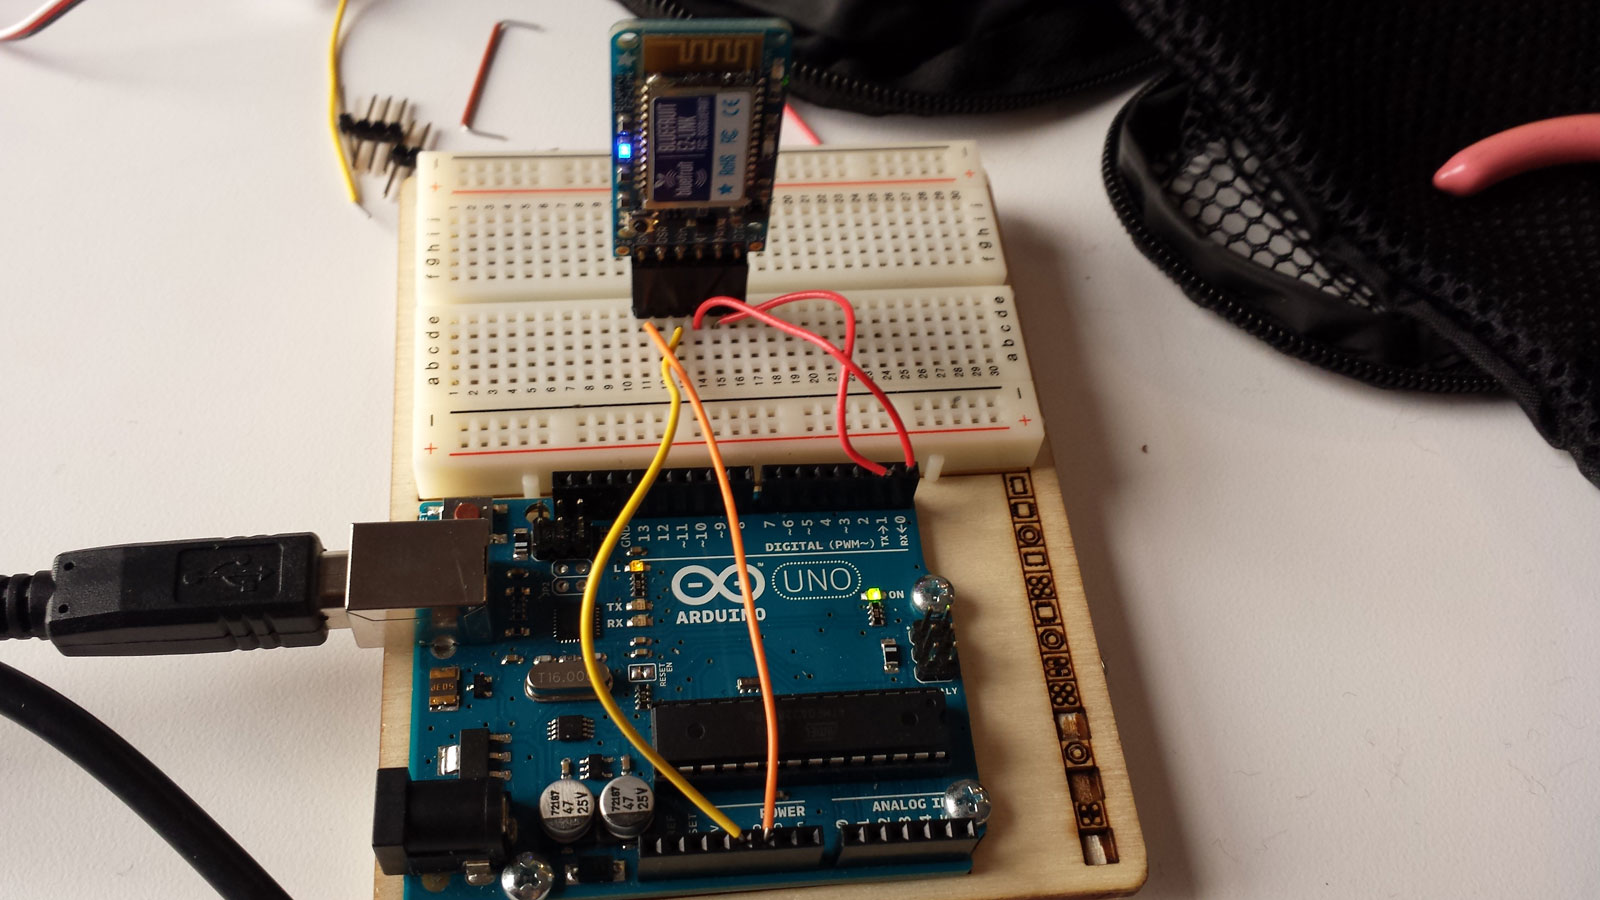 We used bluetooth and Arduino to send the signal